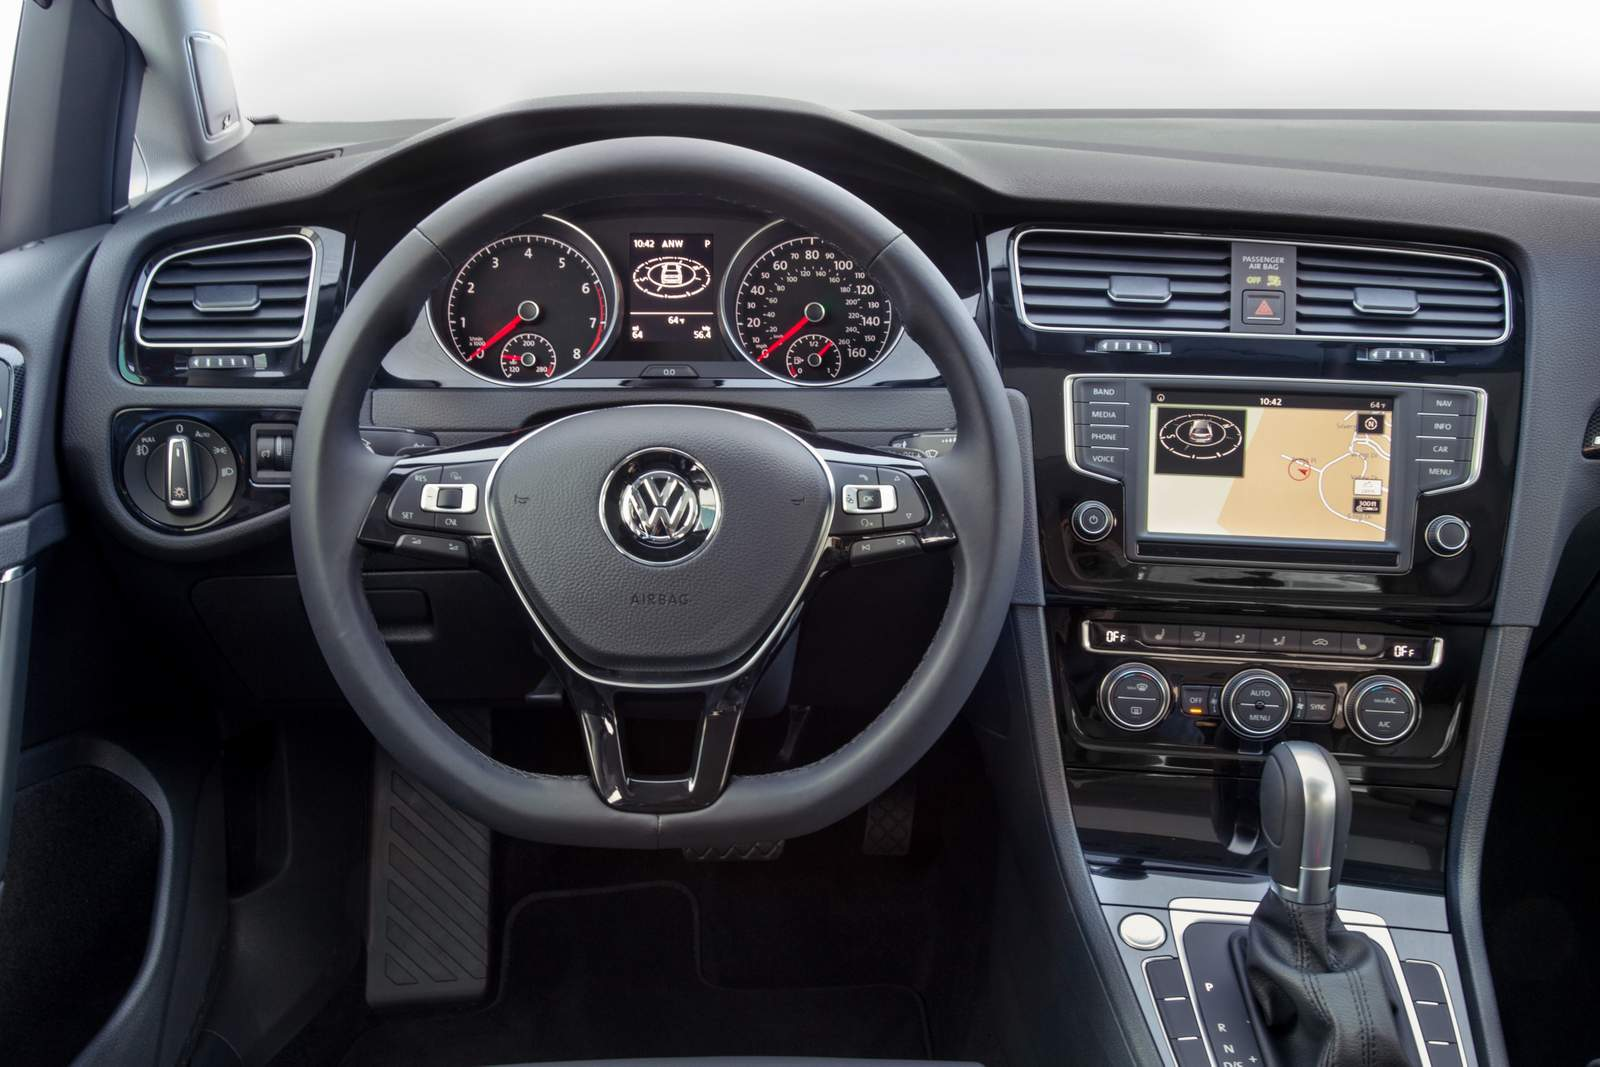 Volkswagen Golf 2016 Highline Automático - interior